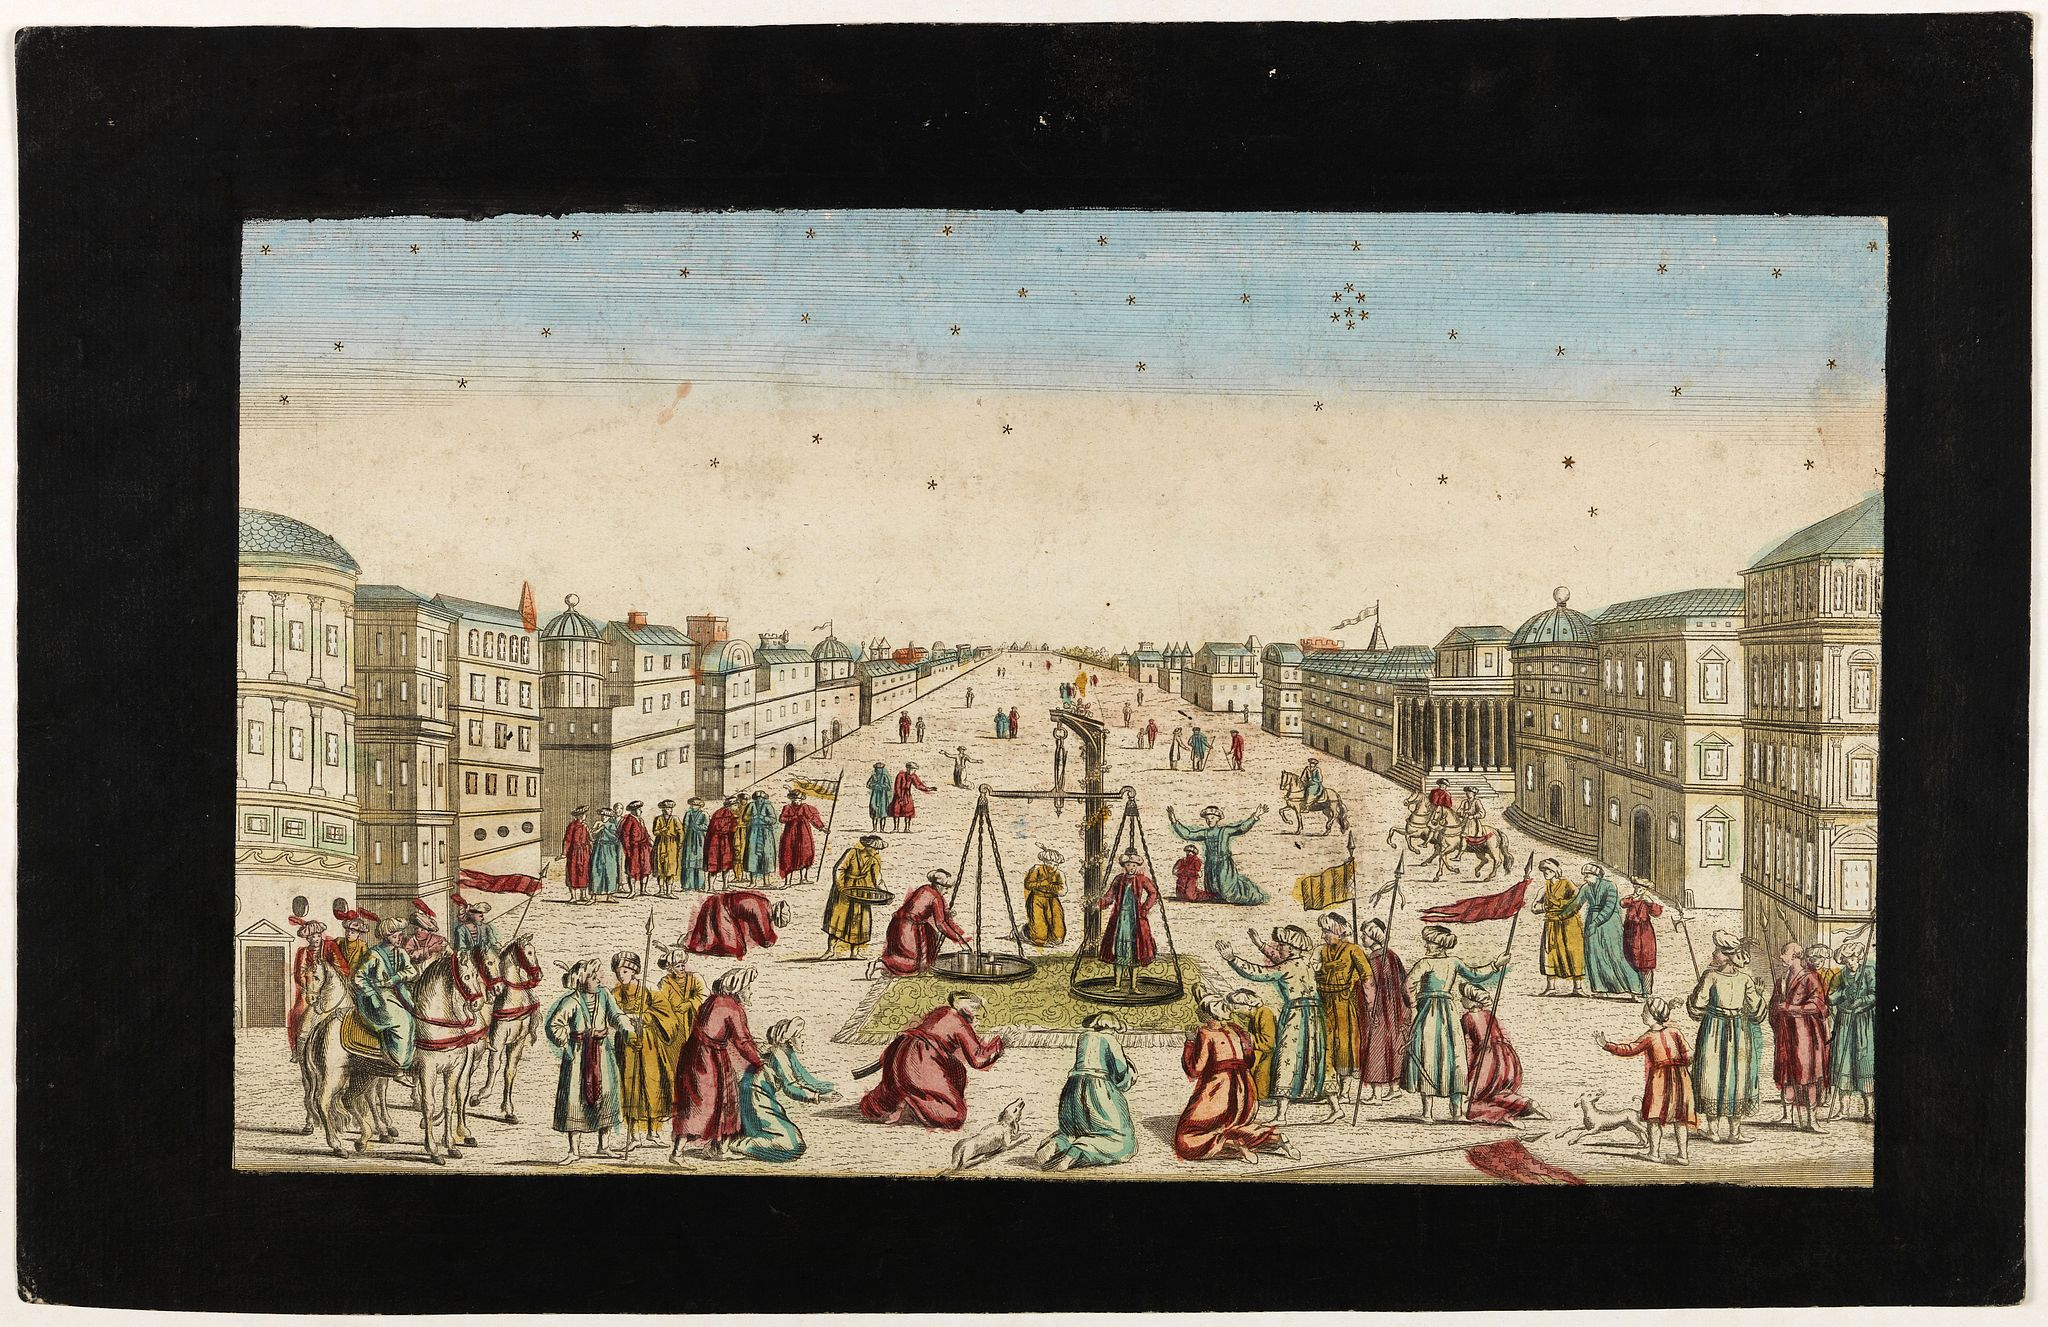 PROBST, G.B. -  Imaginary view of a square with Muslims festival.